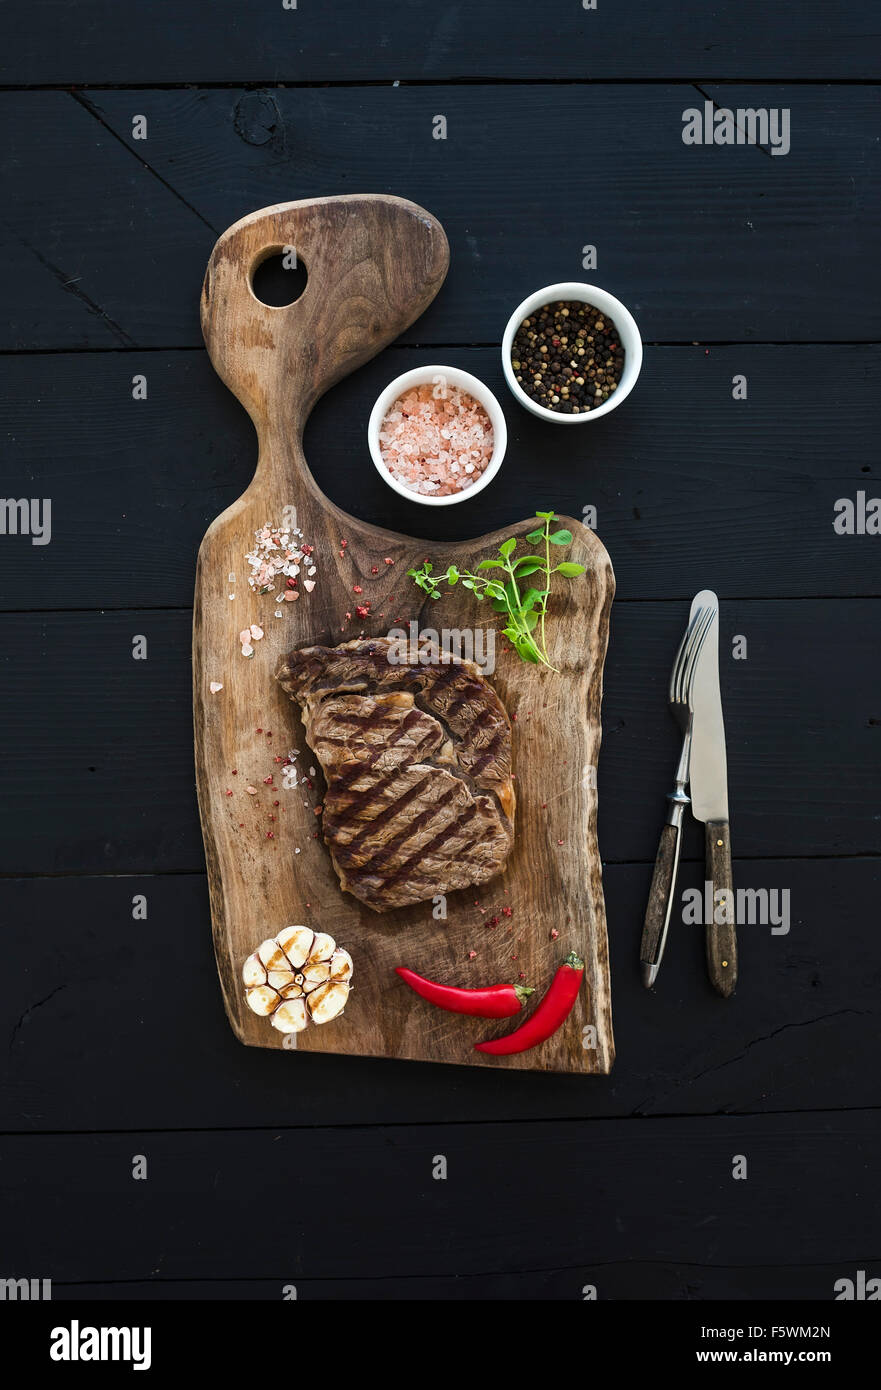 Grilled ribeye beef steak with herbs and spices on walnut cutting board over black wooden background, top view Stock Photo